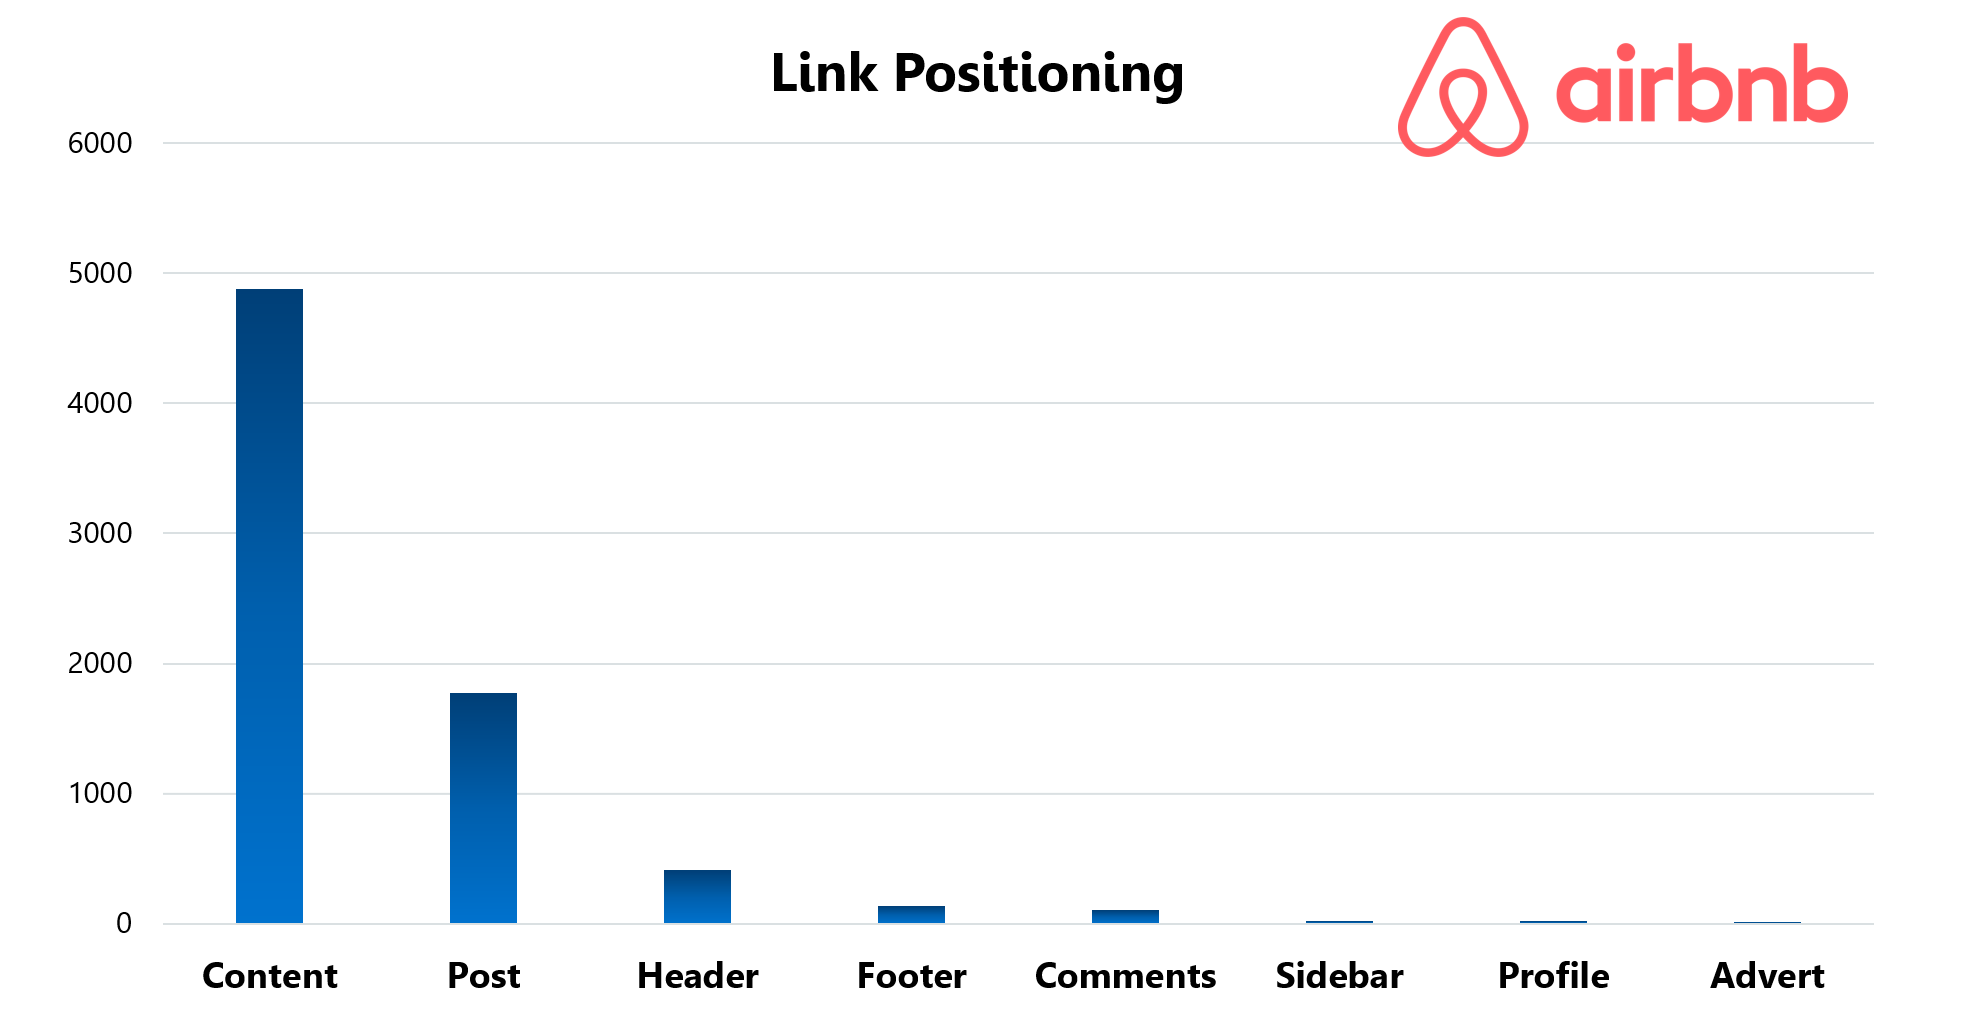 Airbnb Link Positioning